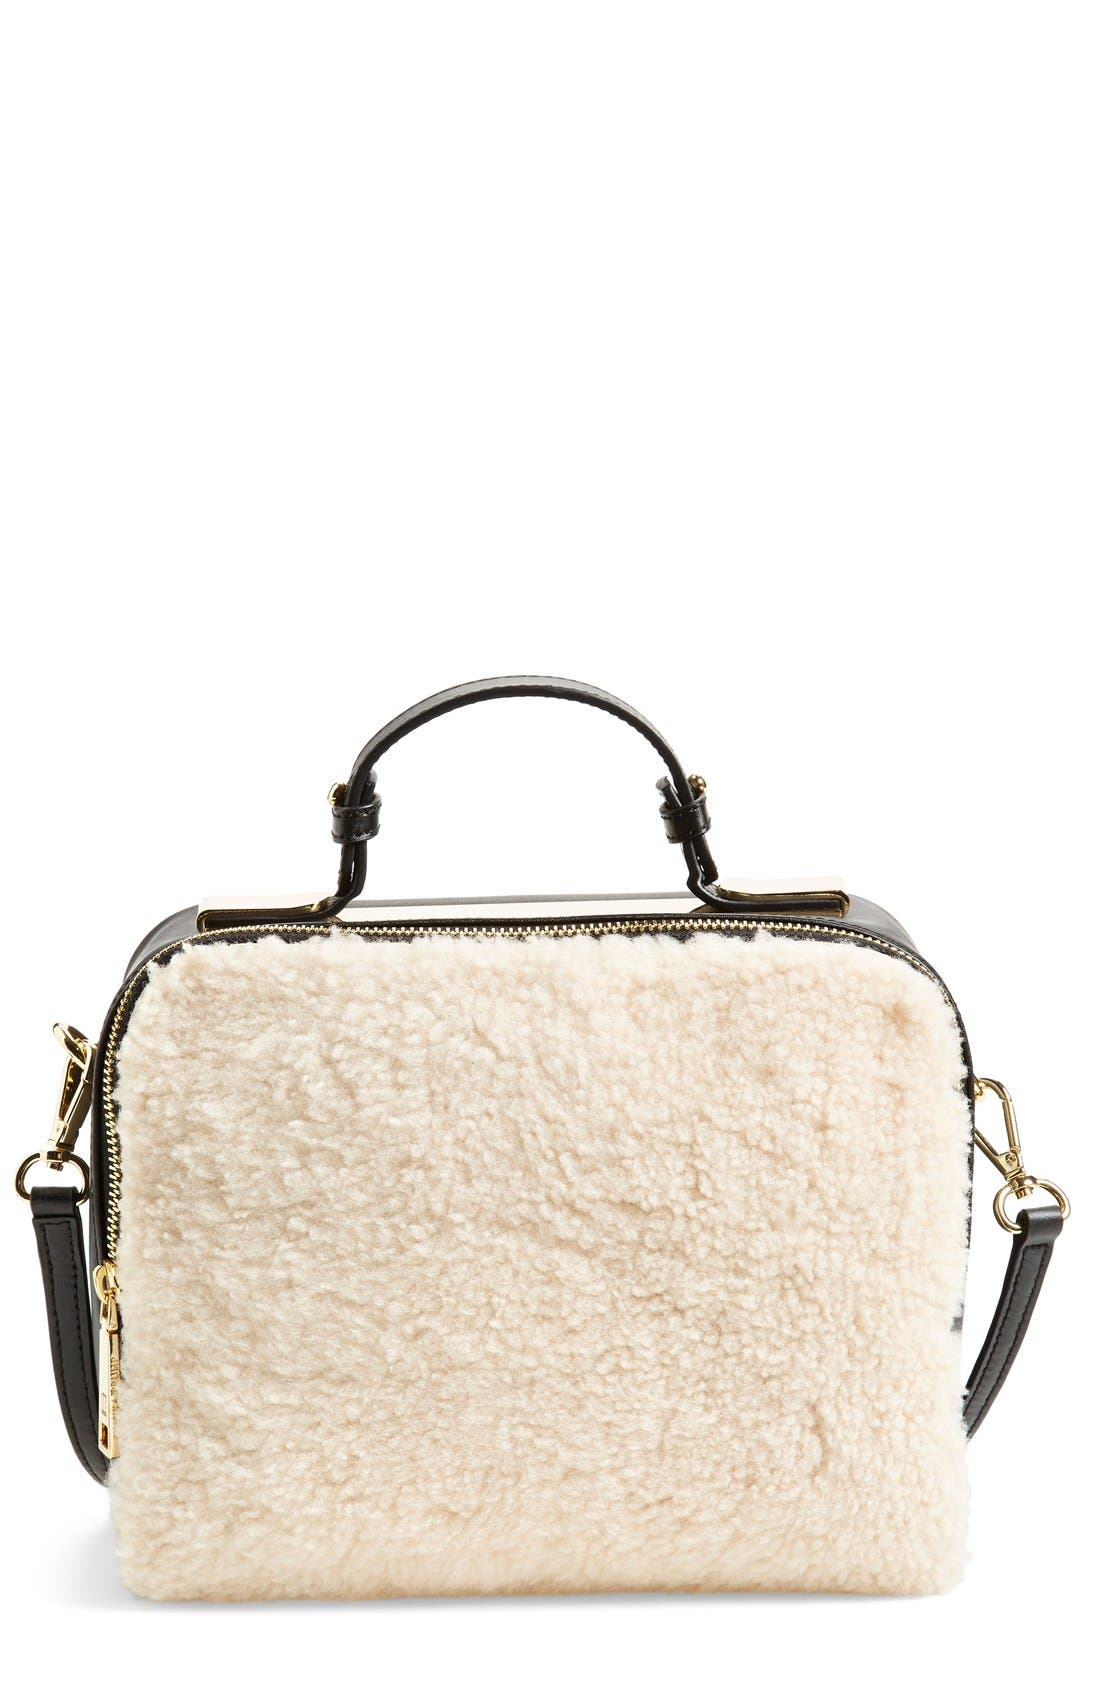 Main Image - Ivanka Trump 'Bedminster' Crossbody Satchel